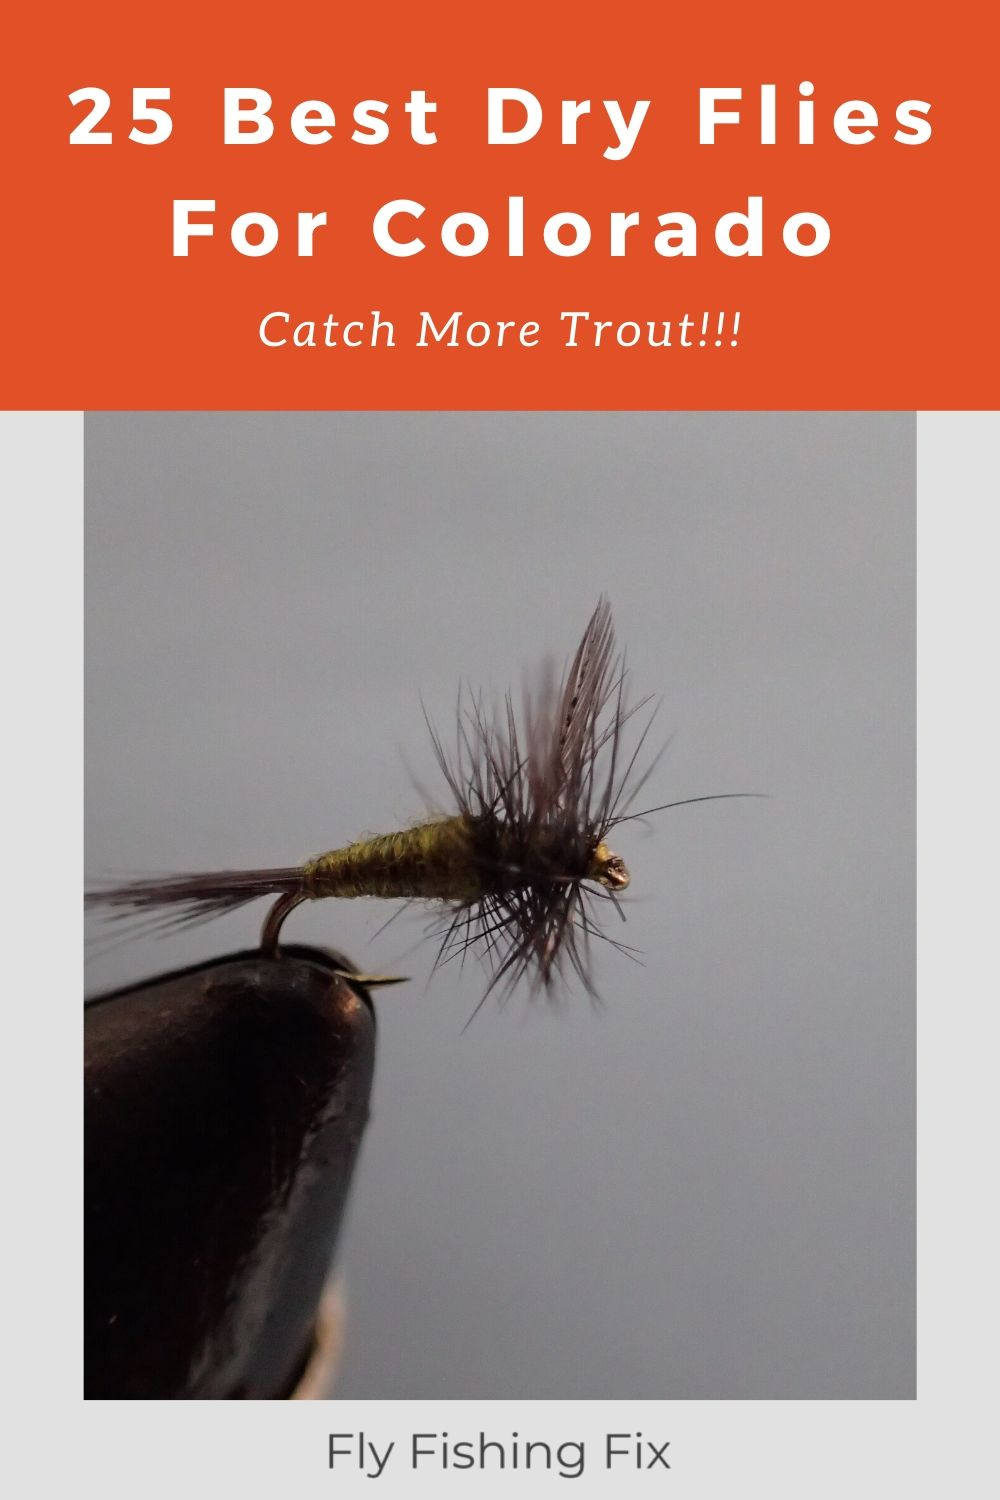 18 Pack Winged Ant Traditional Ants Dry Trout Fishing Flies Griffiths Gnat